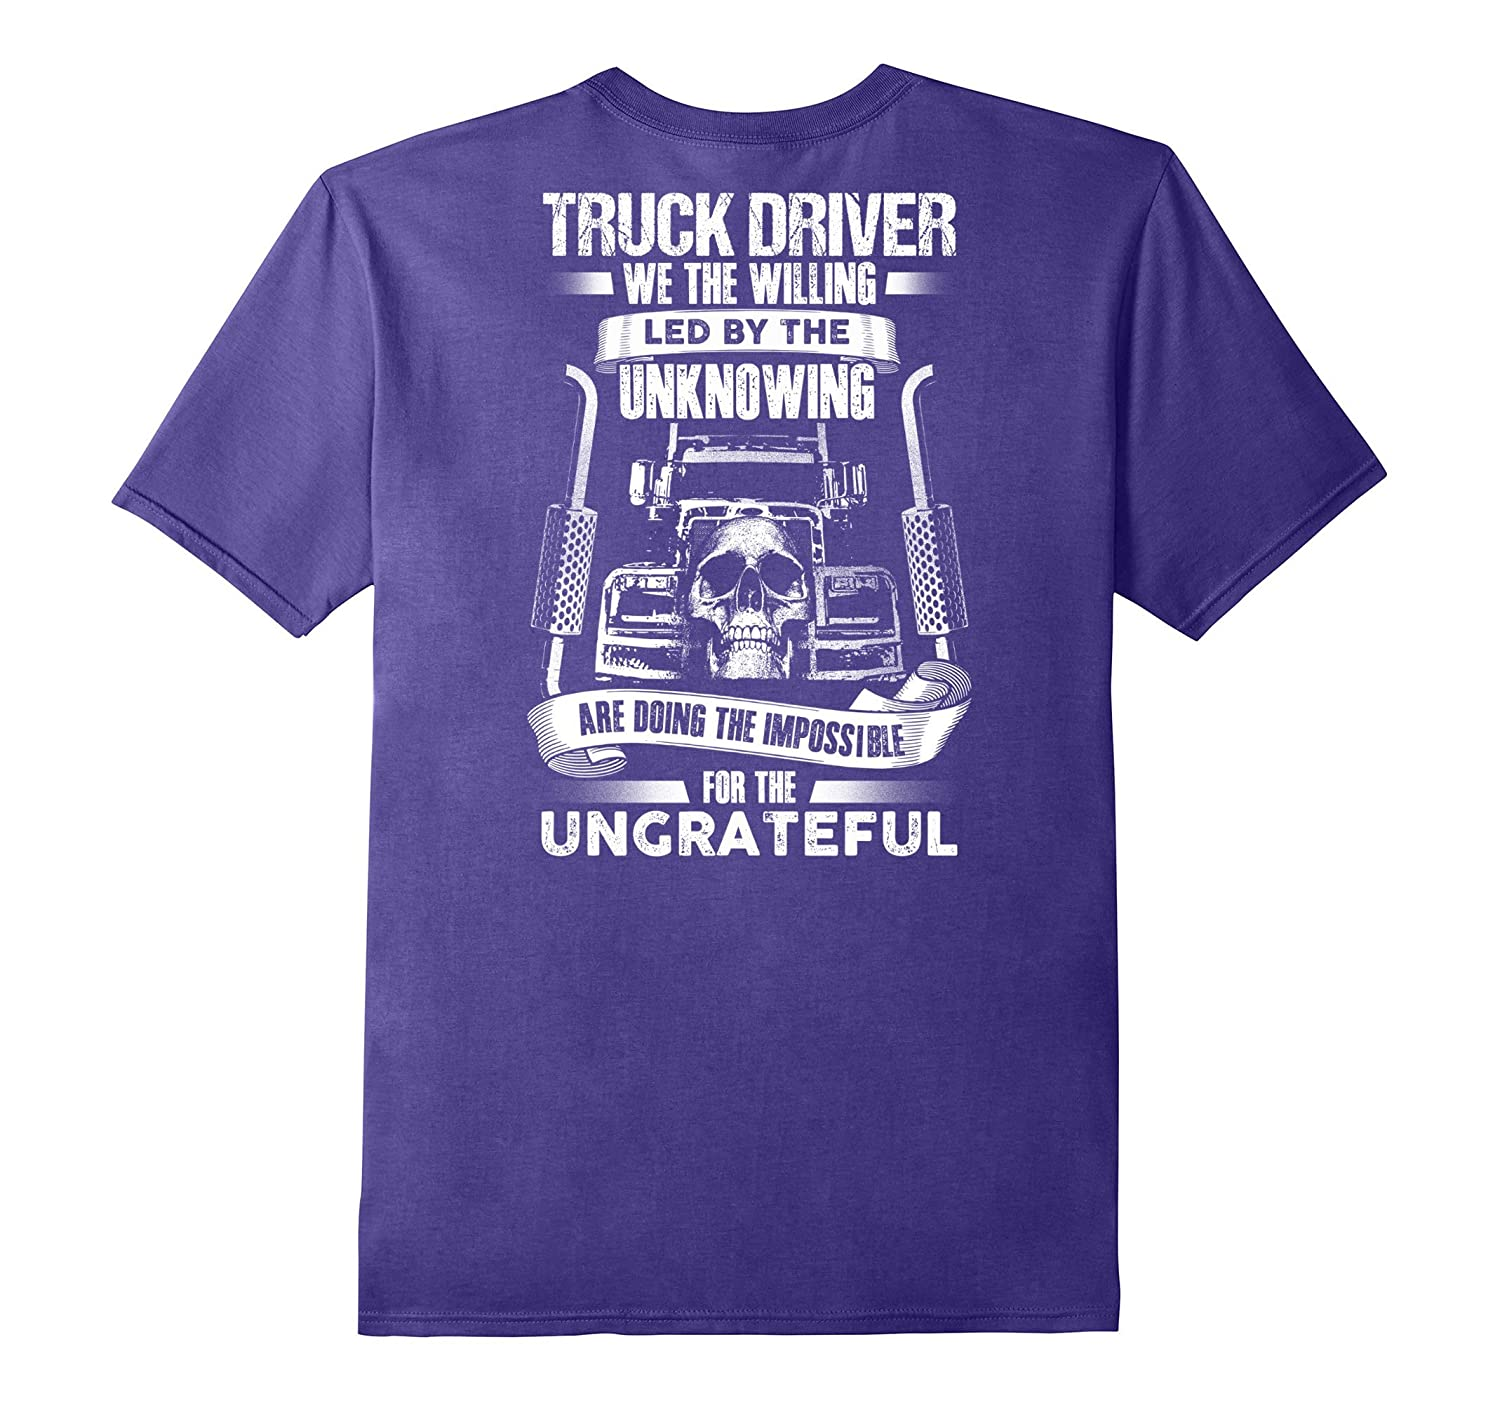 DRIVERs Truckers Trucking T Shirt Backside-Newstyleth